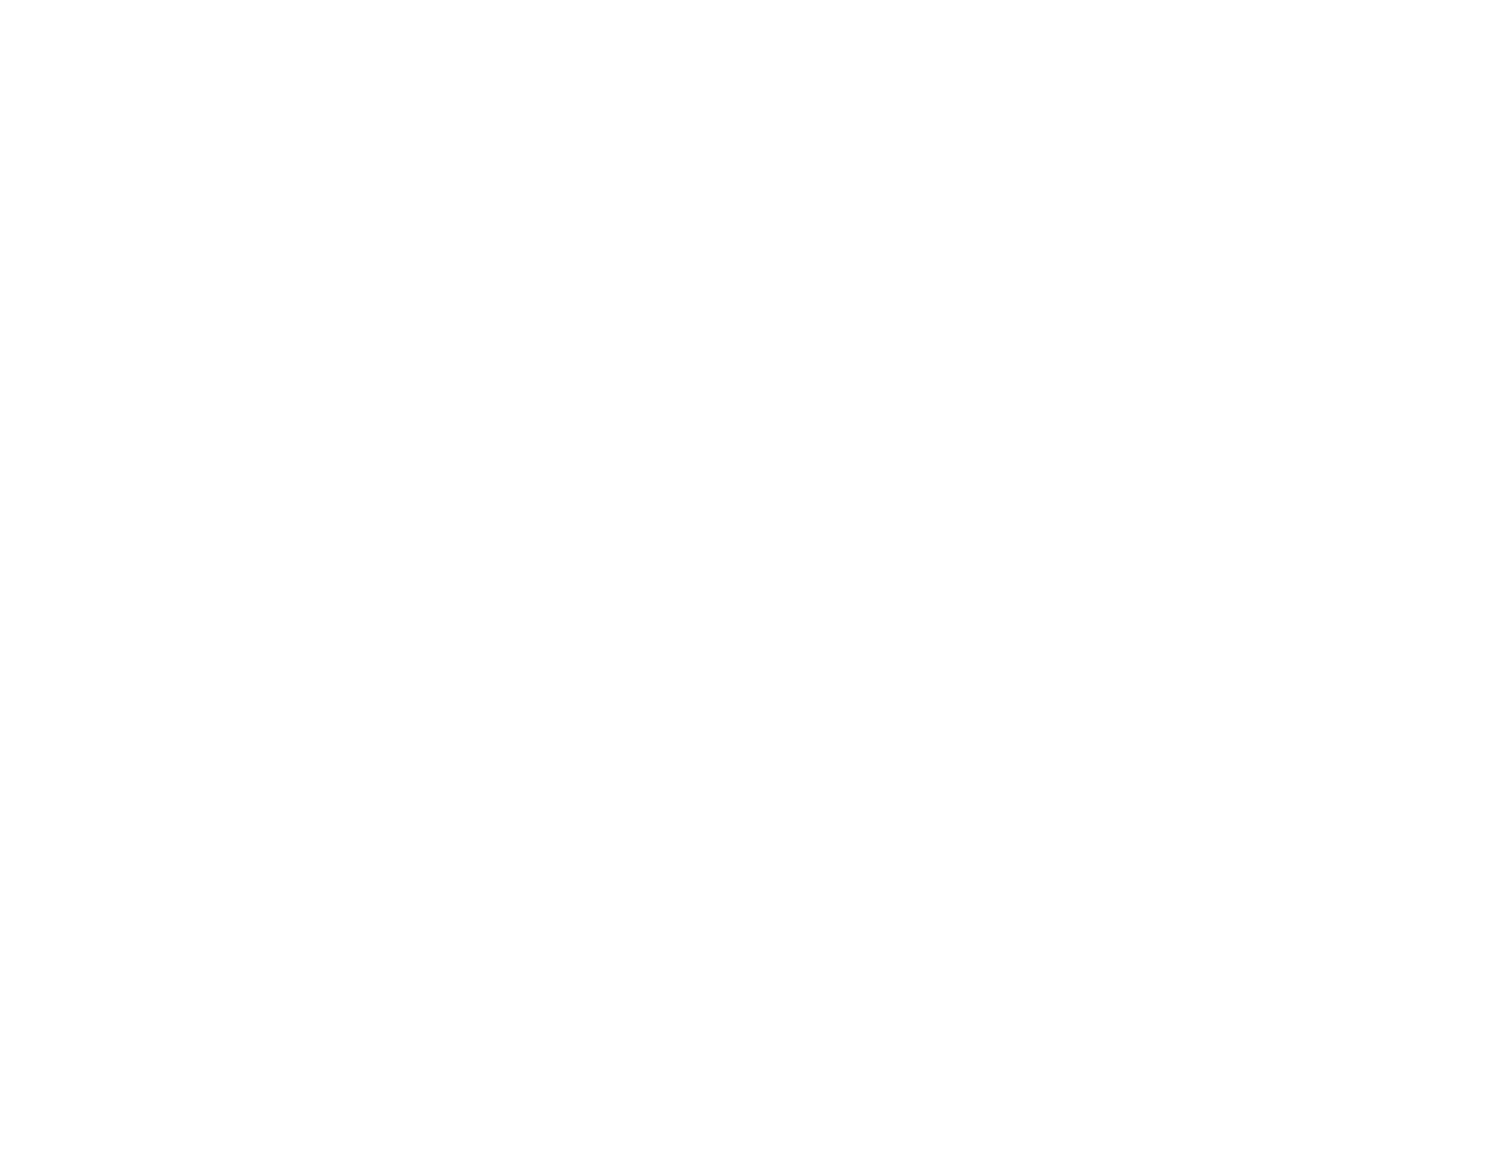 Bustle & Bash